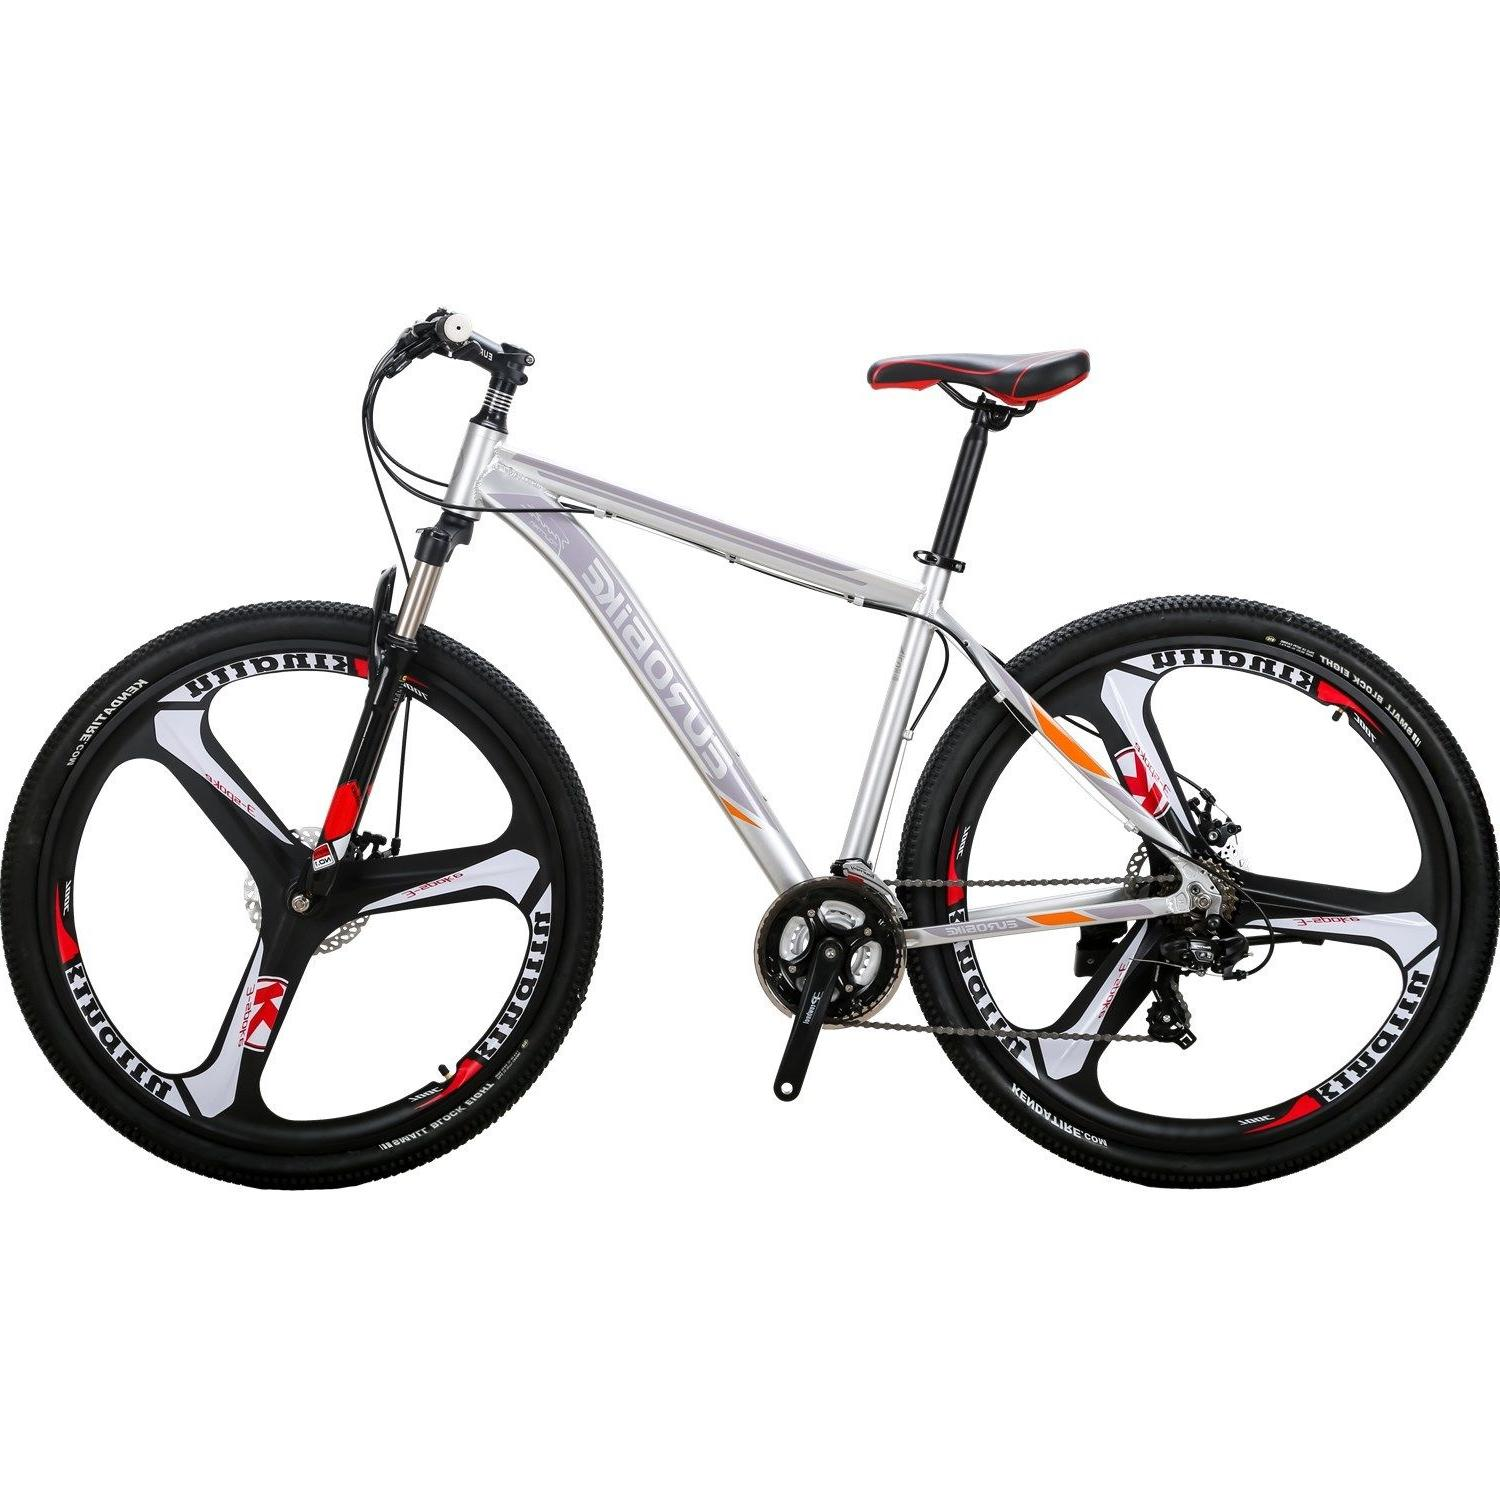 "29"" Aluminium Bike Disc Brakes Mens Bikes 21 Speed 29er XL"